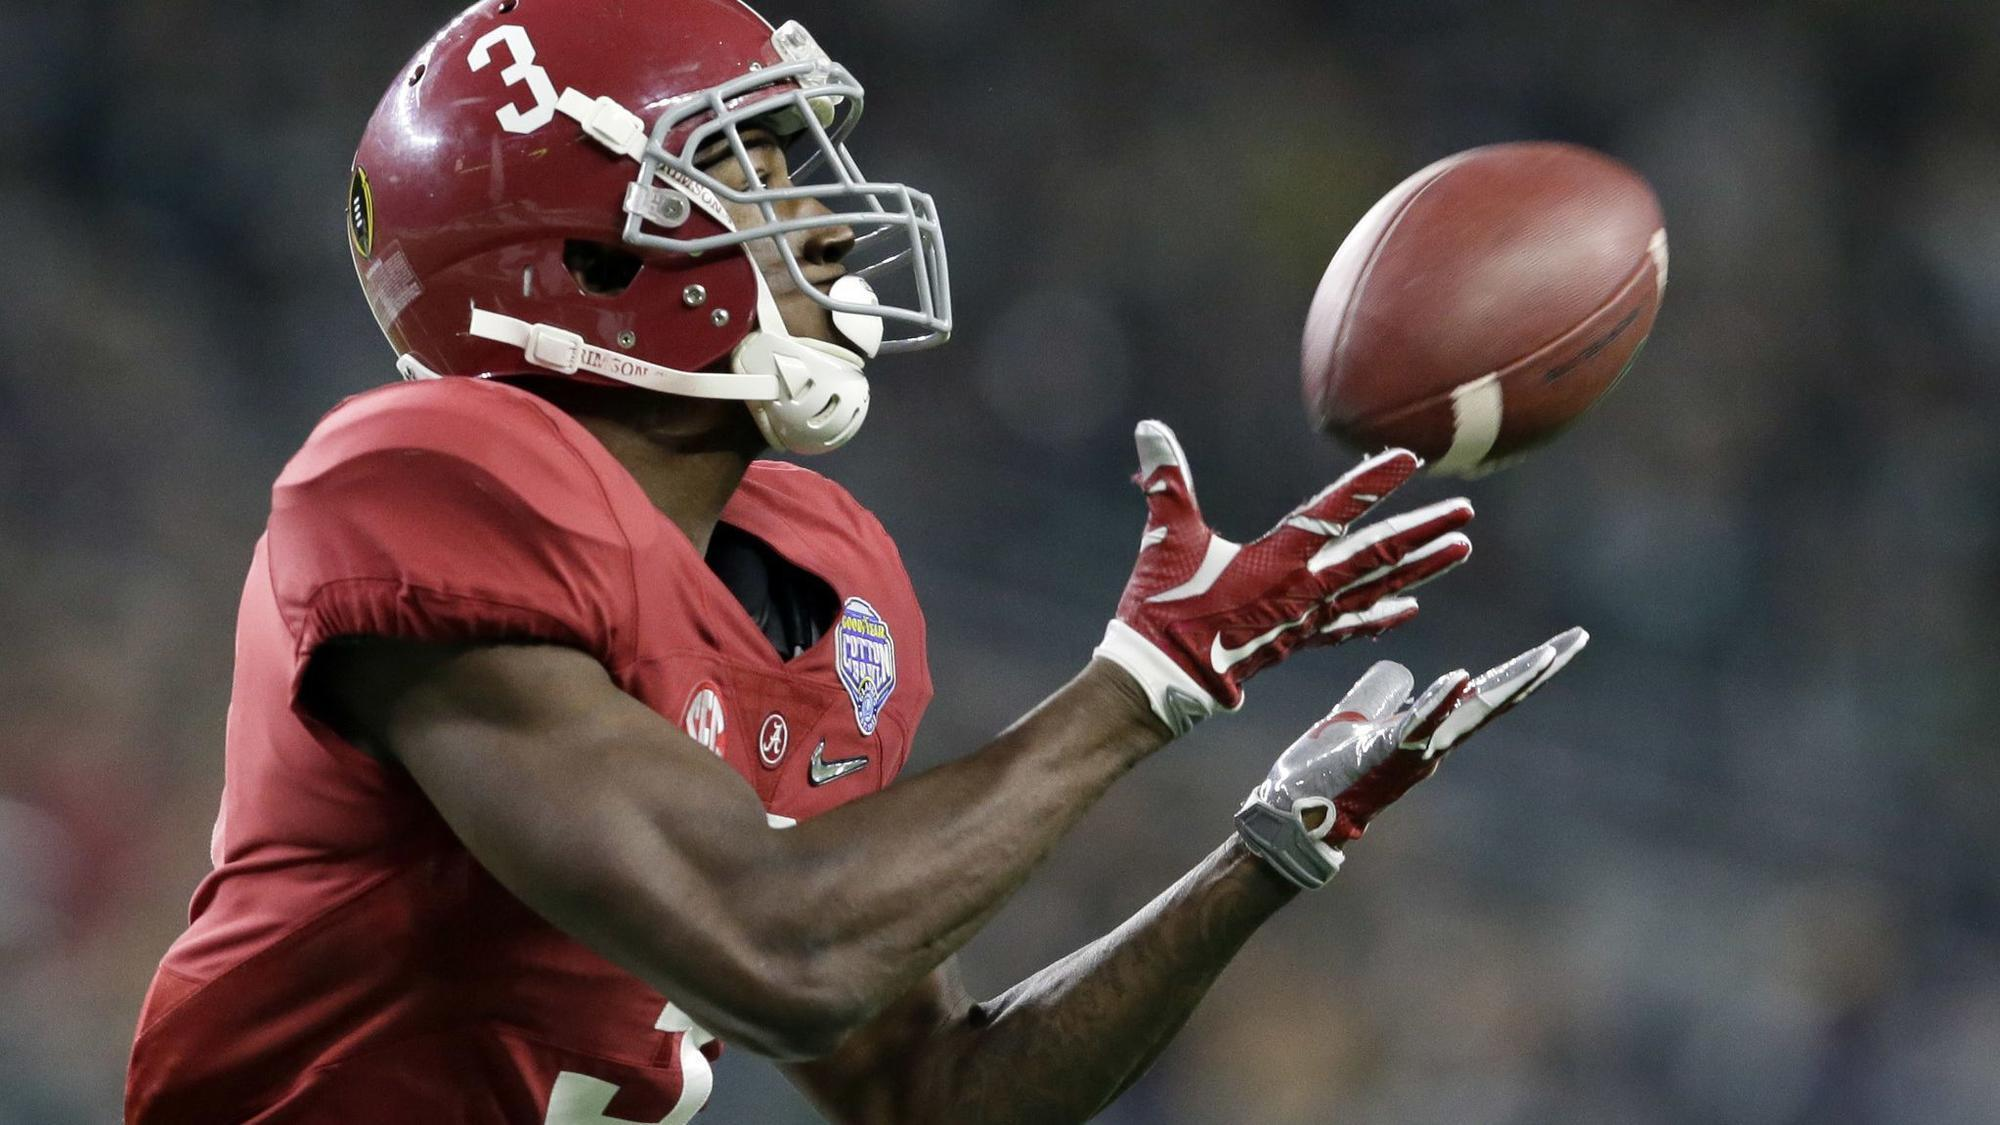 Sd-sp-nfl-draft-2018-top-wide-receivers-20180419